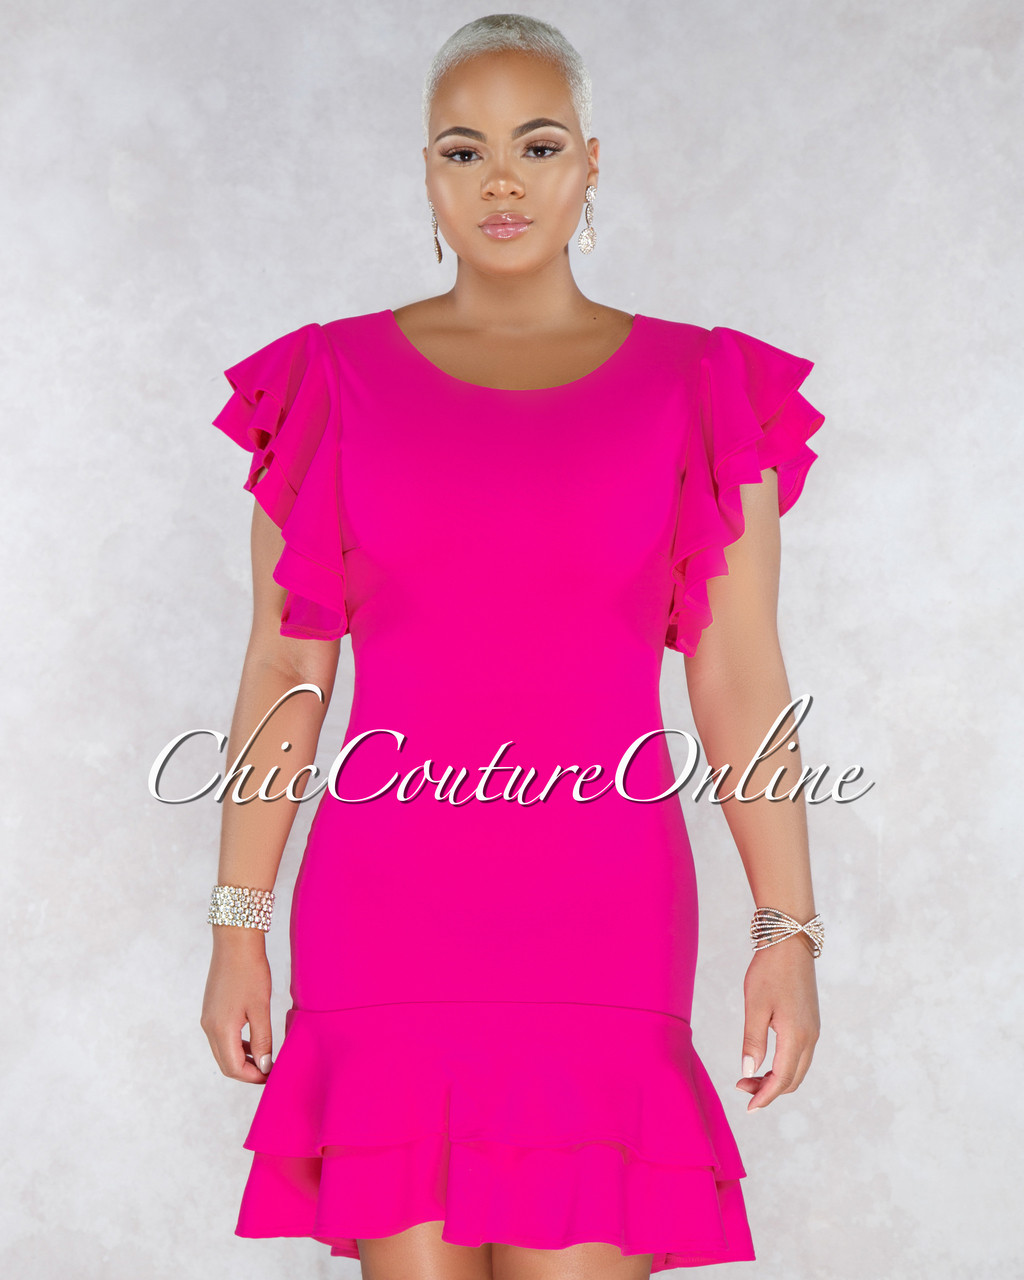 a58d34b2692 Sullie Fuchsia Ruffle High Low Dress. Price   50.00. Image 1